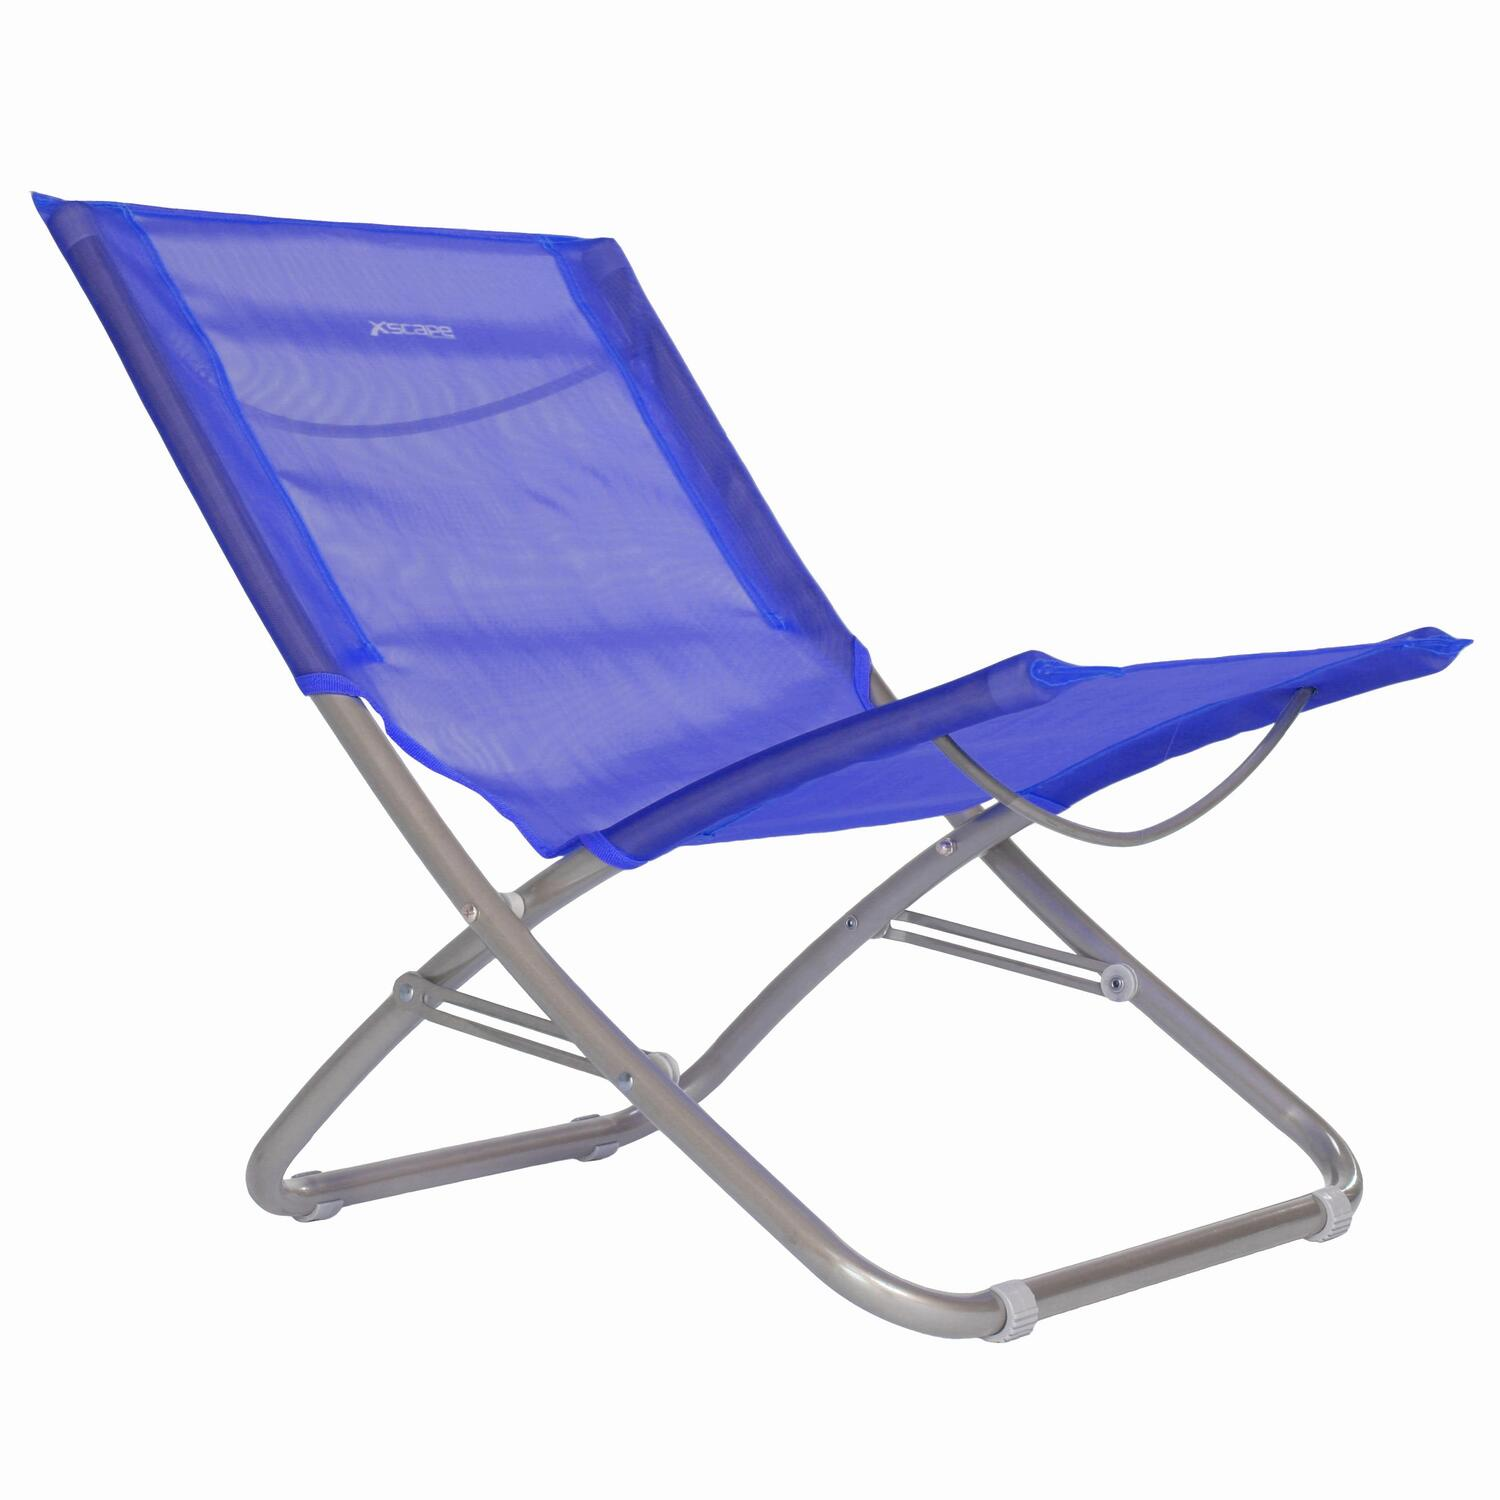 Beach Chairs Xscape Sol Lite Folding Beach Chair By Oj Commerce 28 99